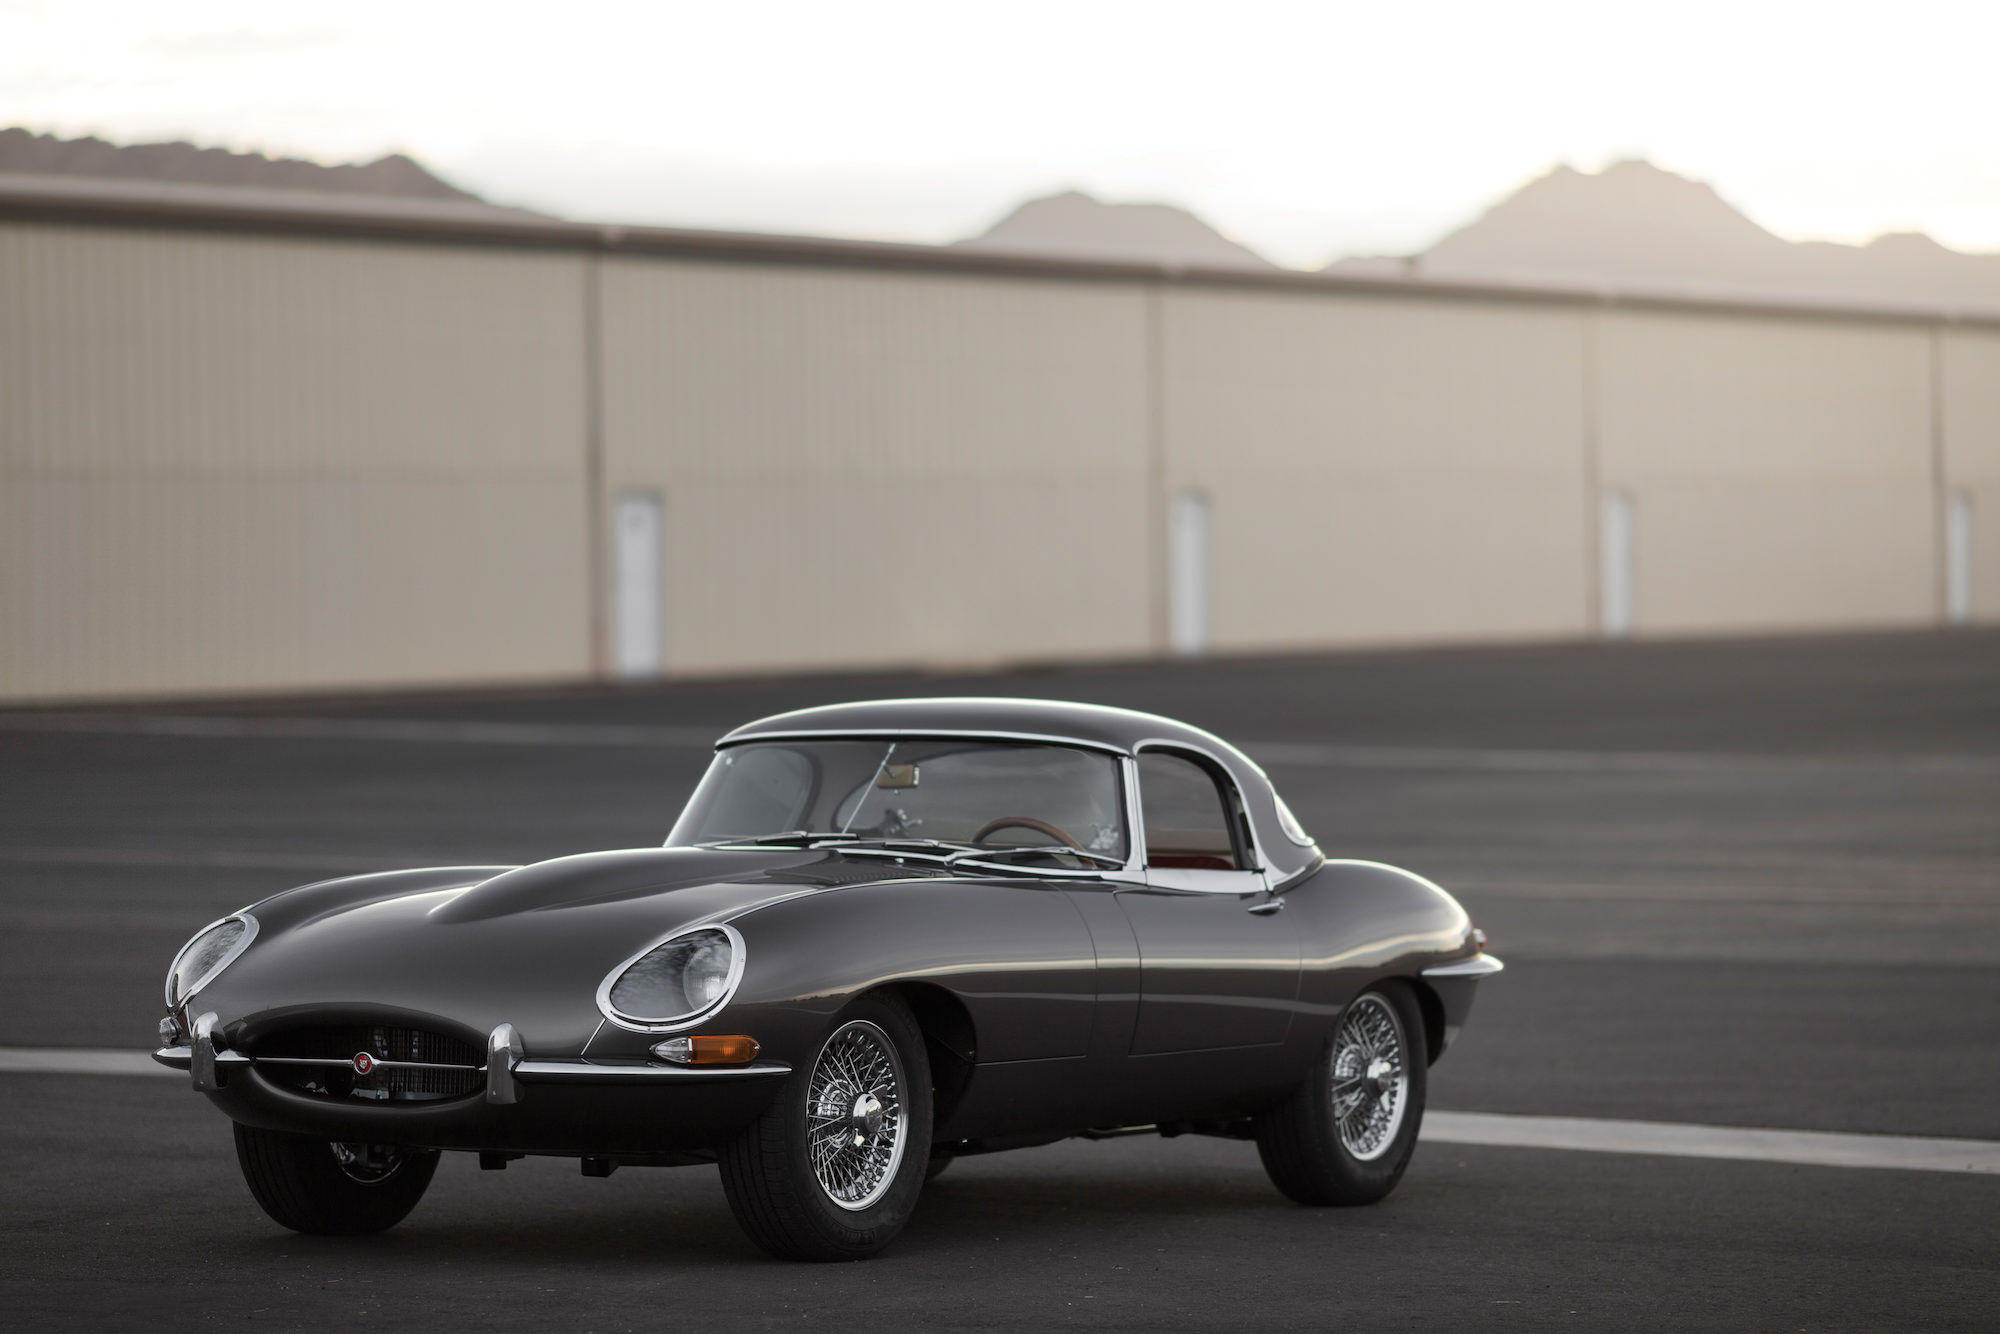 1965 jaguar e type series 1. Black Bedroom Furniture Sets. Home Design Ideas